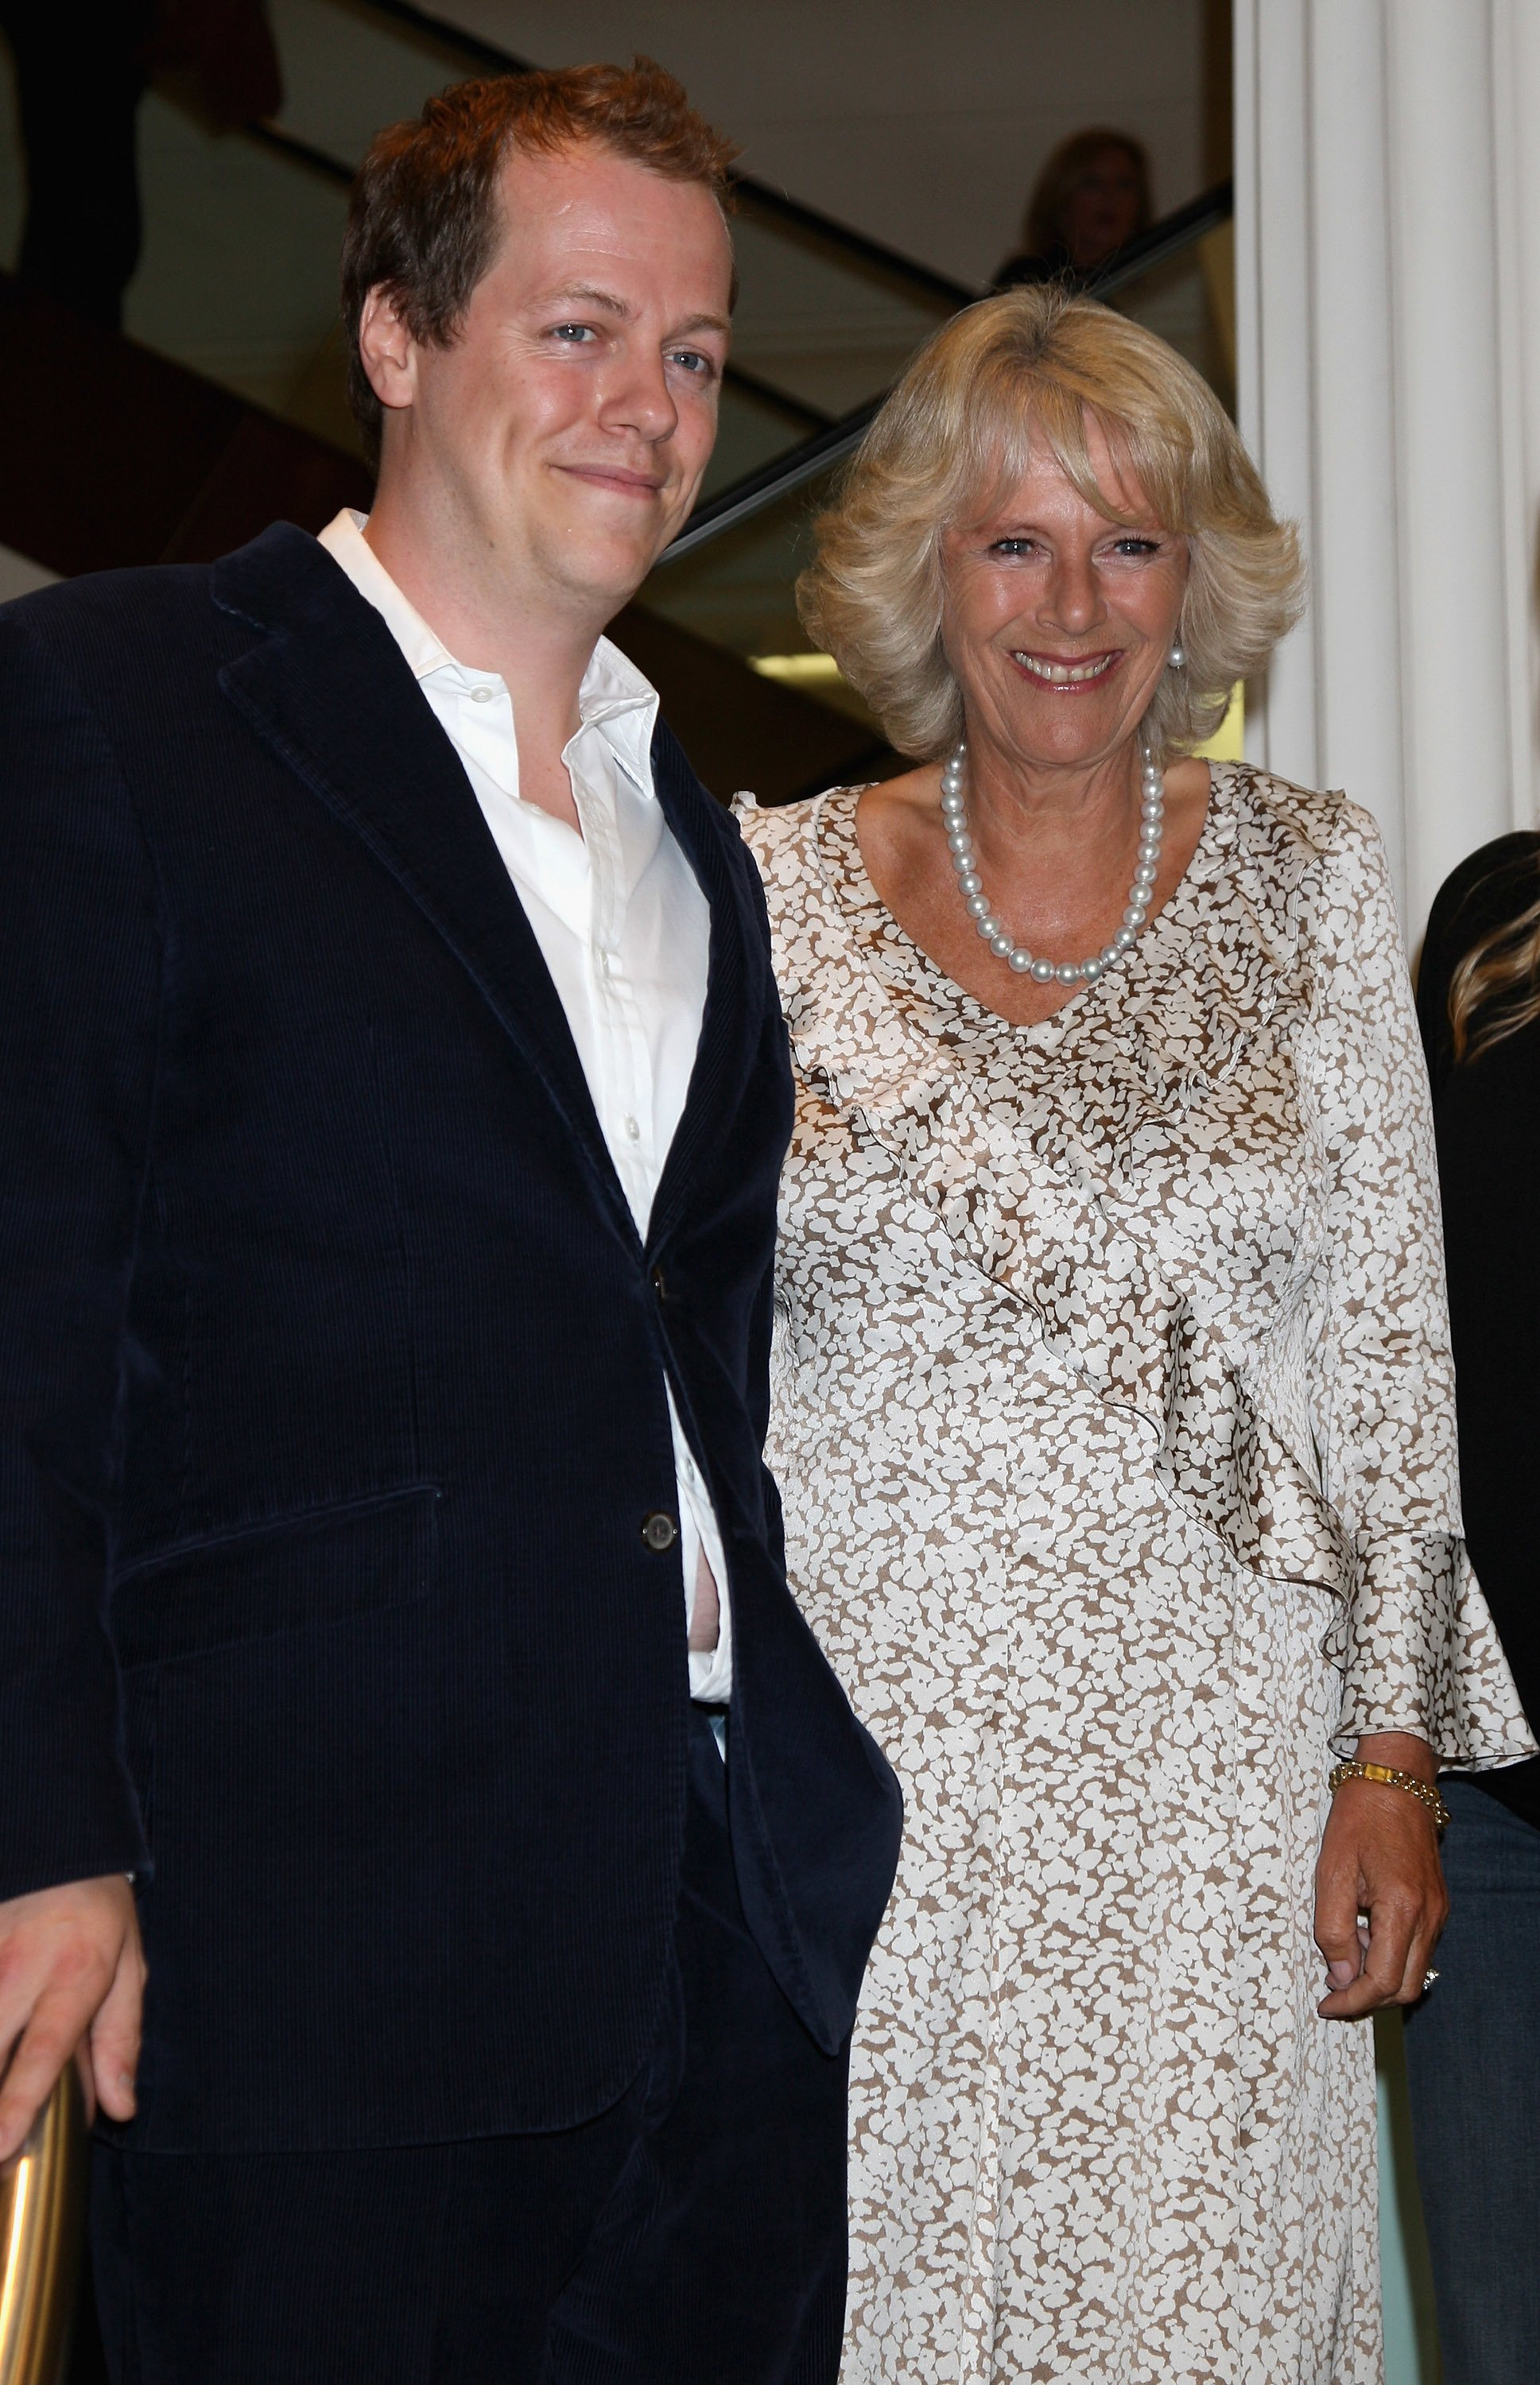 Duchess Camilla S Only Son Tom Parker Bowles Is A Prominent Food Writer And A Doting Husband